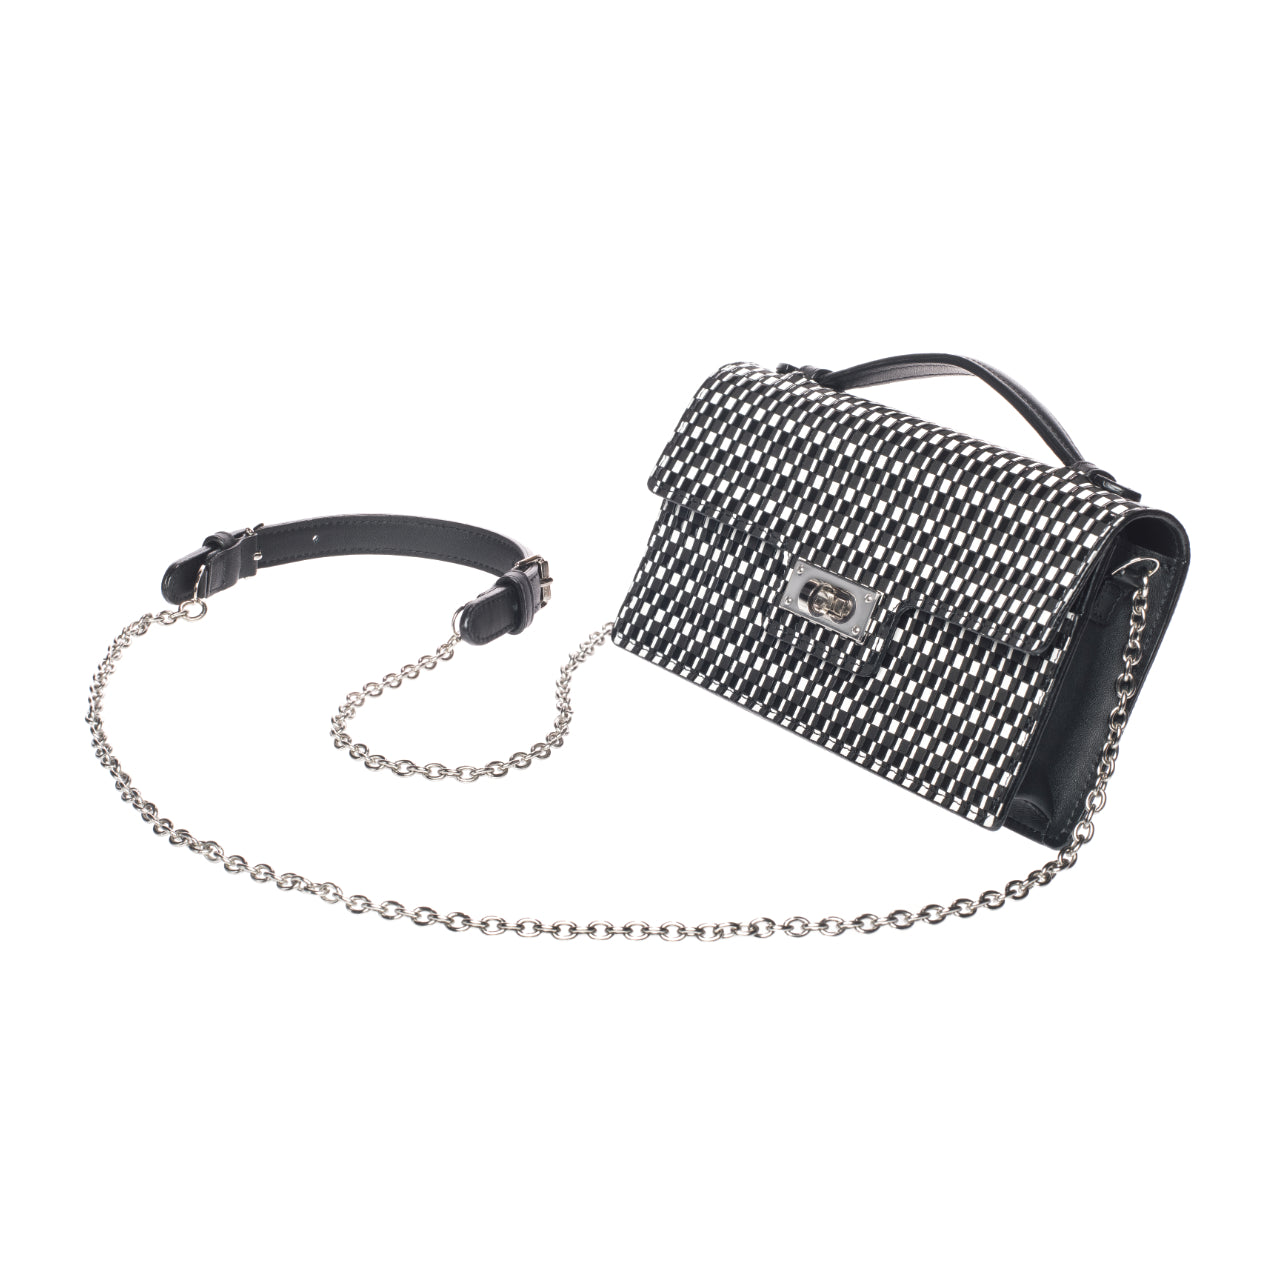 INDEN CROSS-BODY BAG SMALL B x W Rippeal